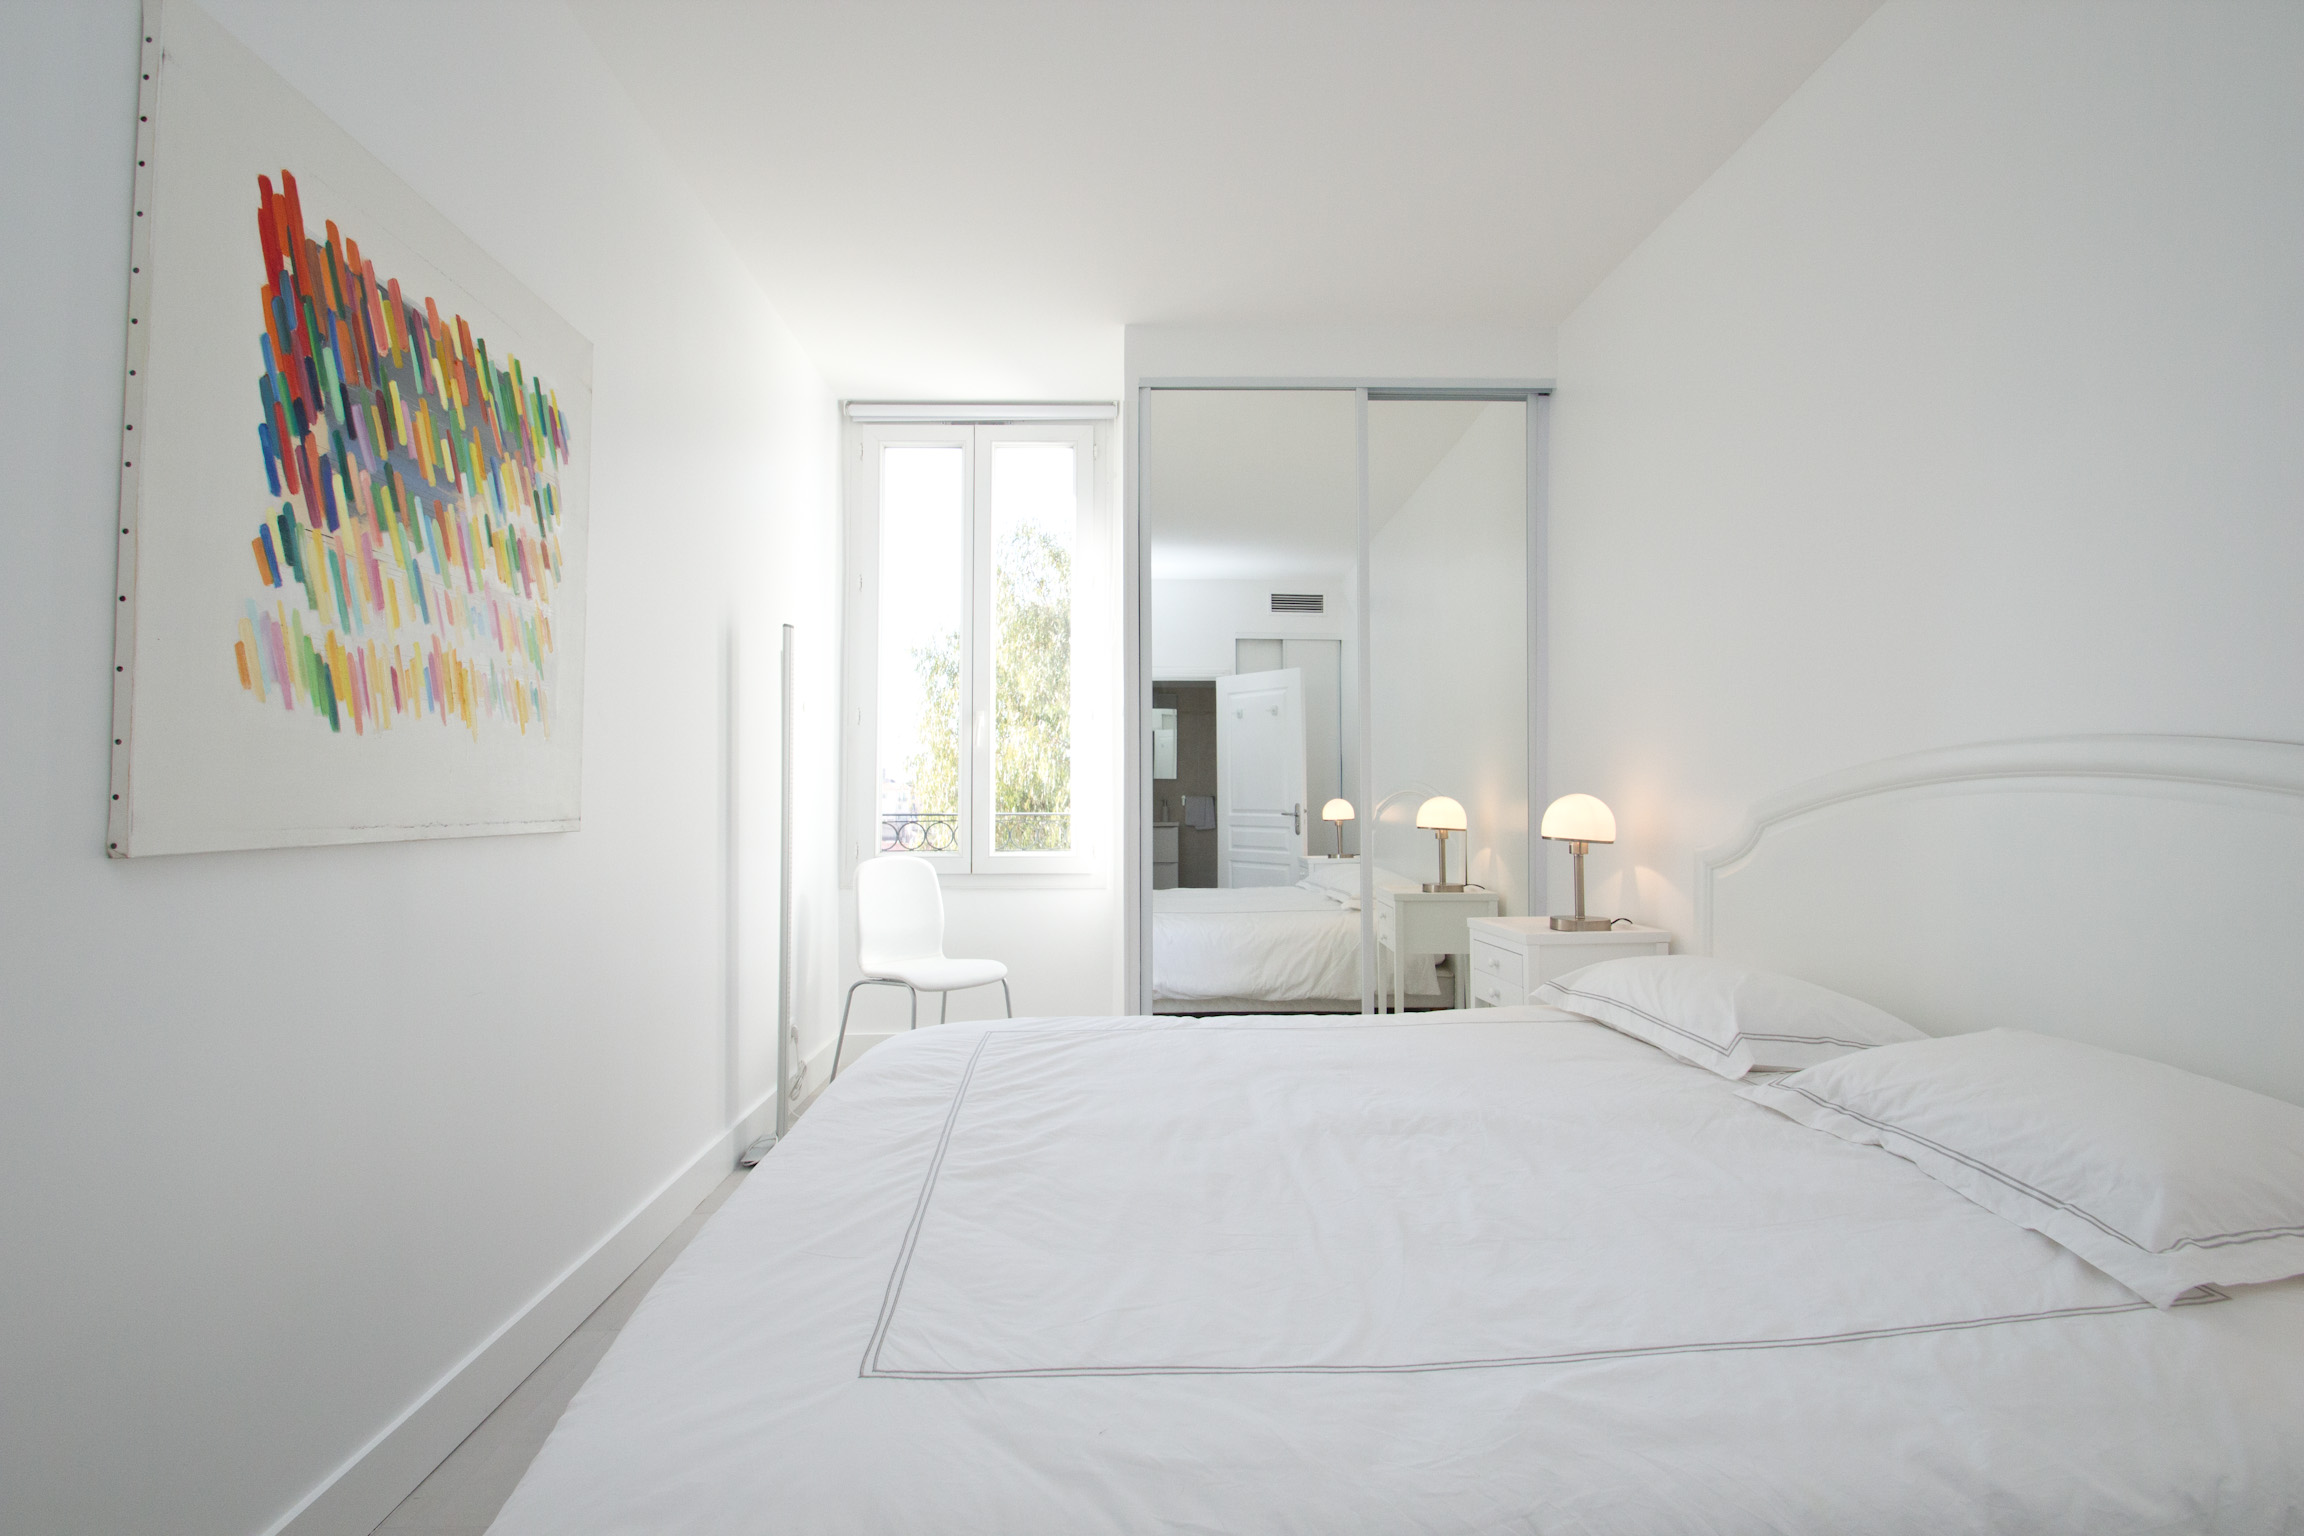 Appartement 2 chambres louer cannes carnot blanc bleu for Appartement a louer bruxelles 1 chambre